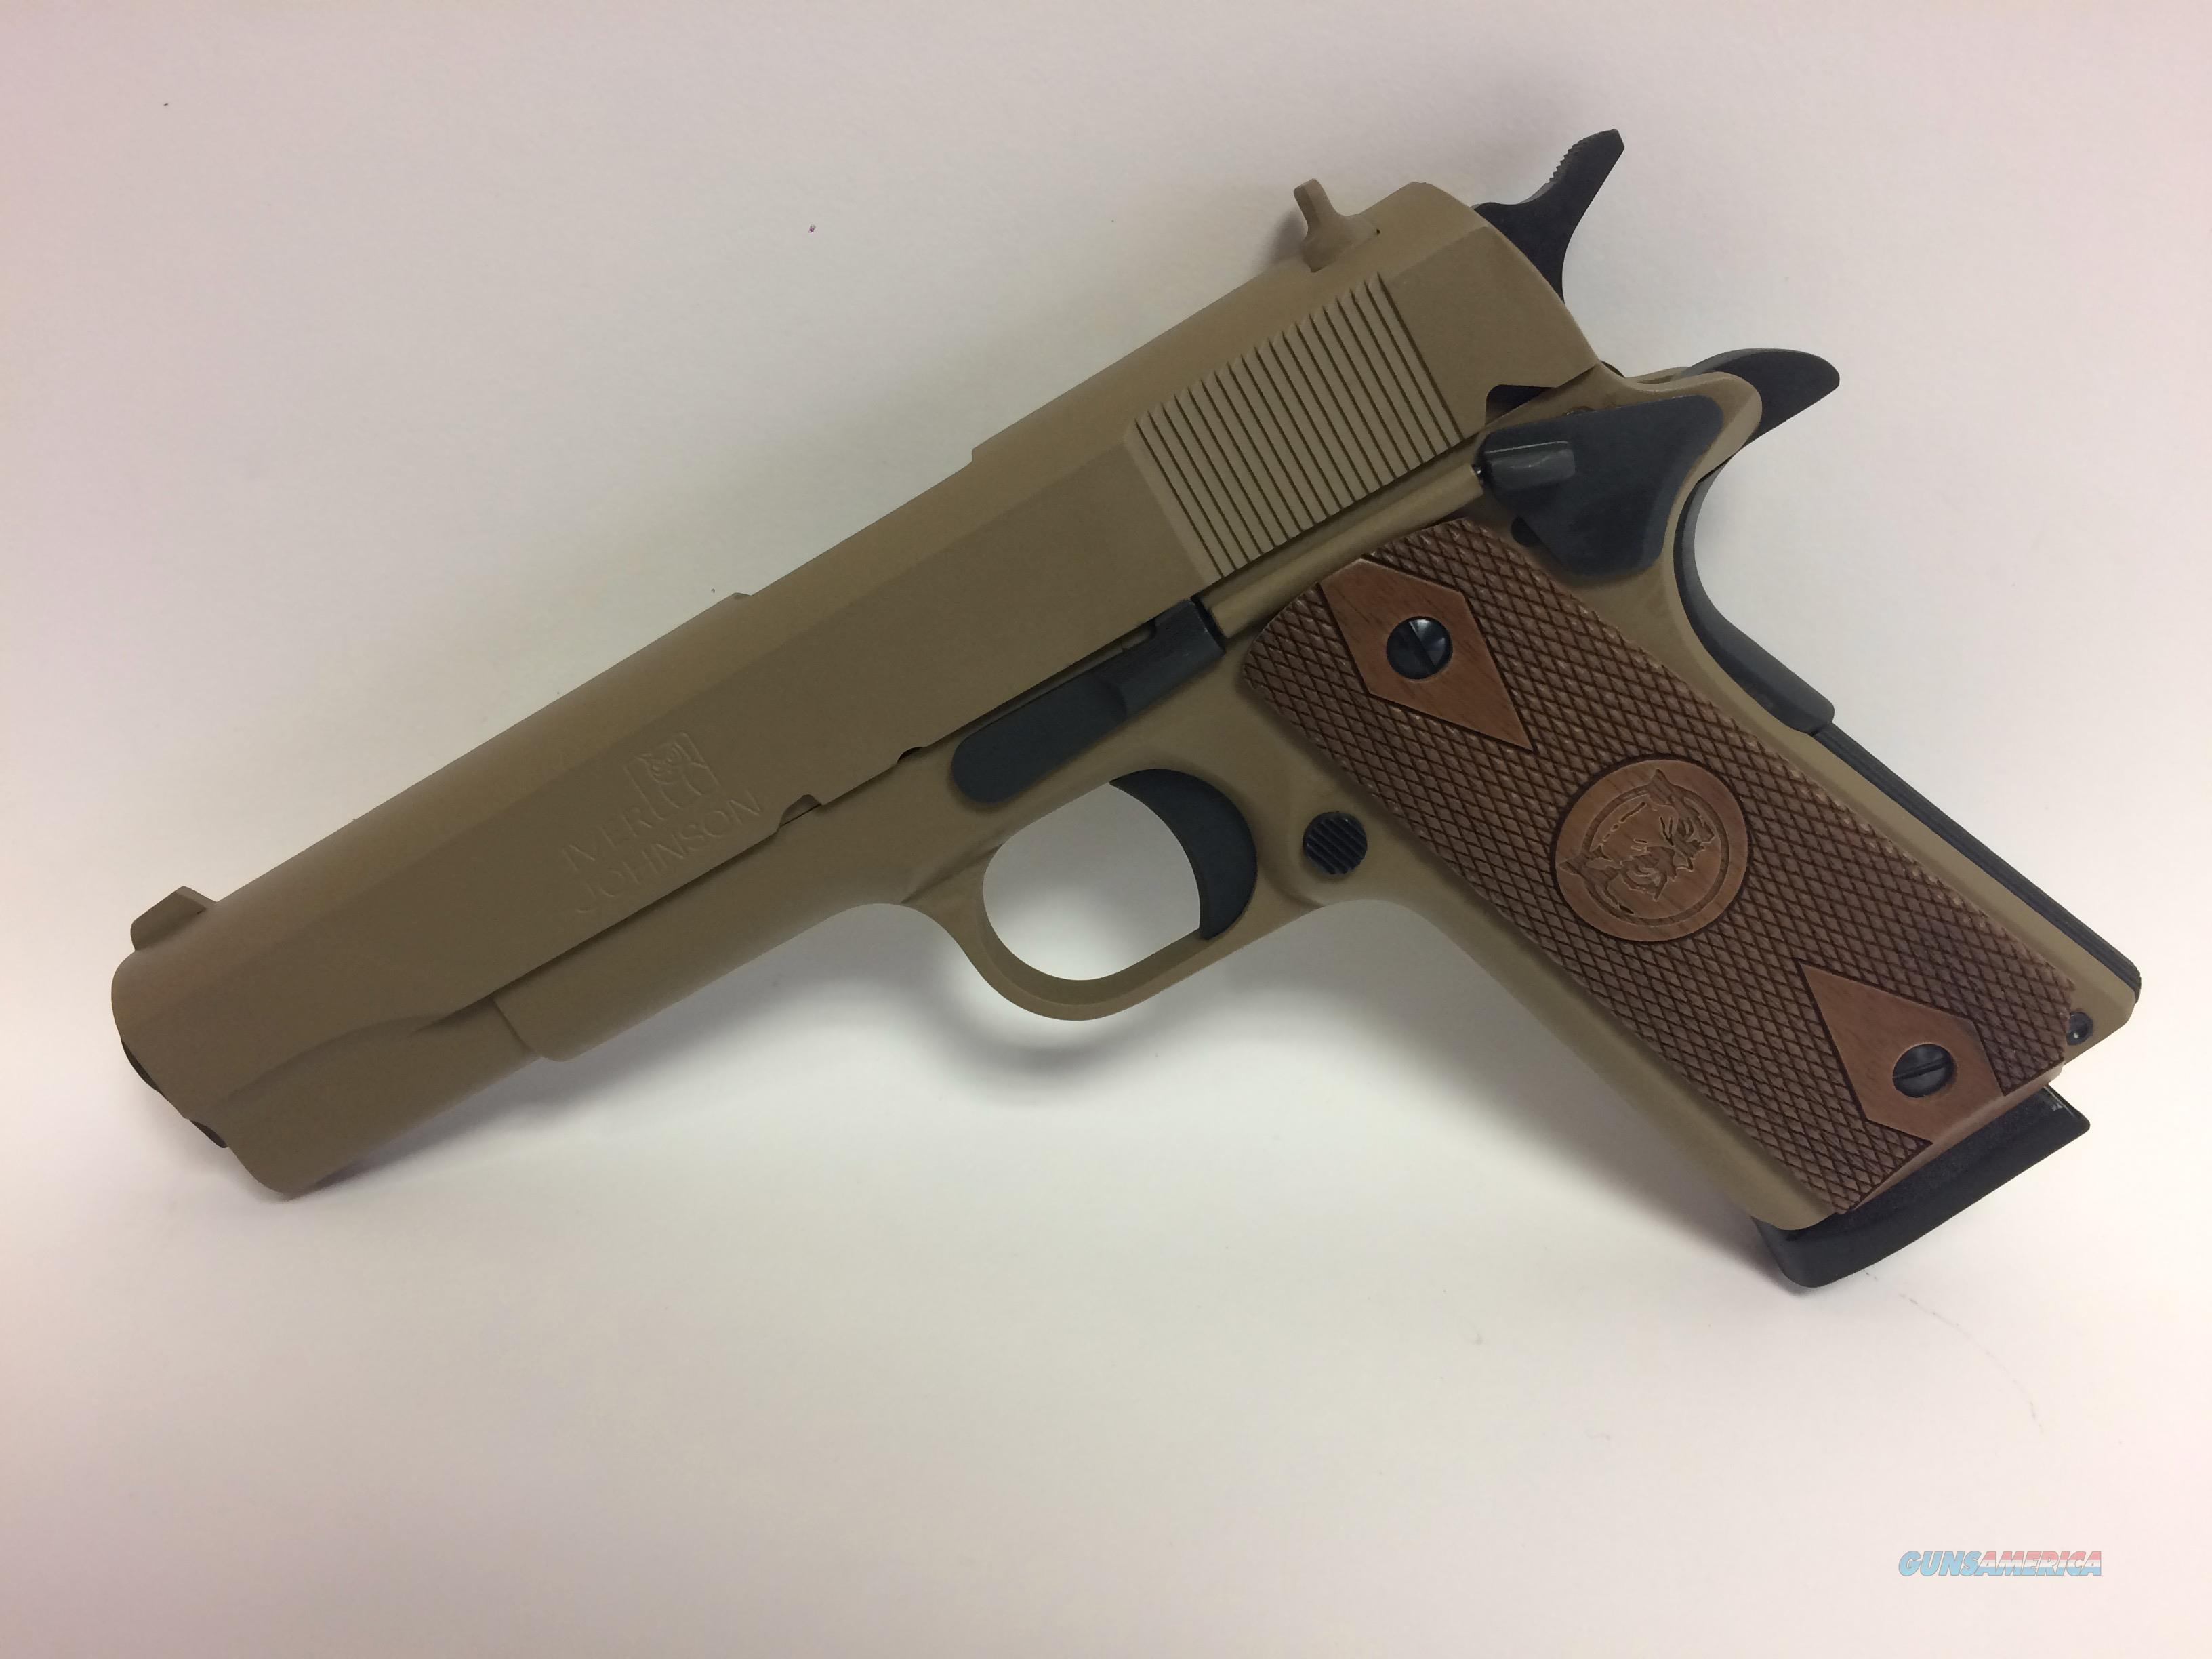 Iver Johnson 1911 A1 Coyote Tan 45 ACP  Guns > Pistols > Iver Johnson Pistols